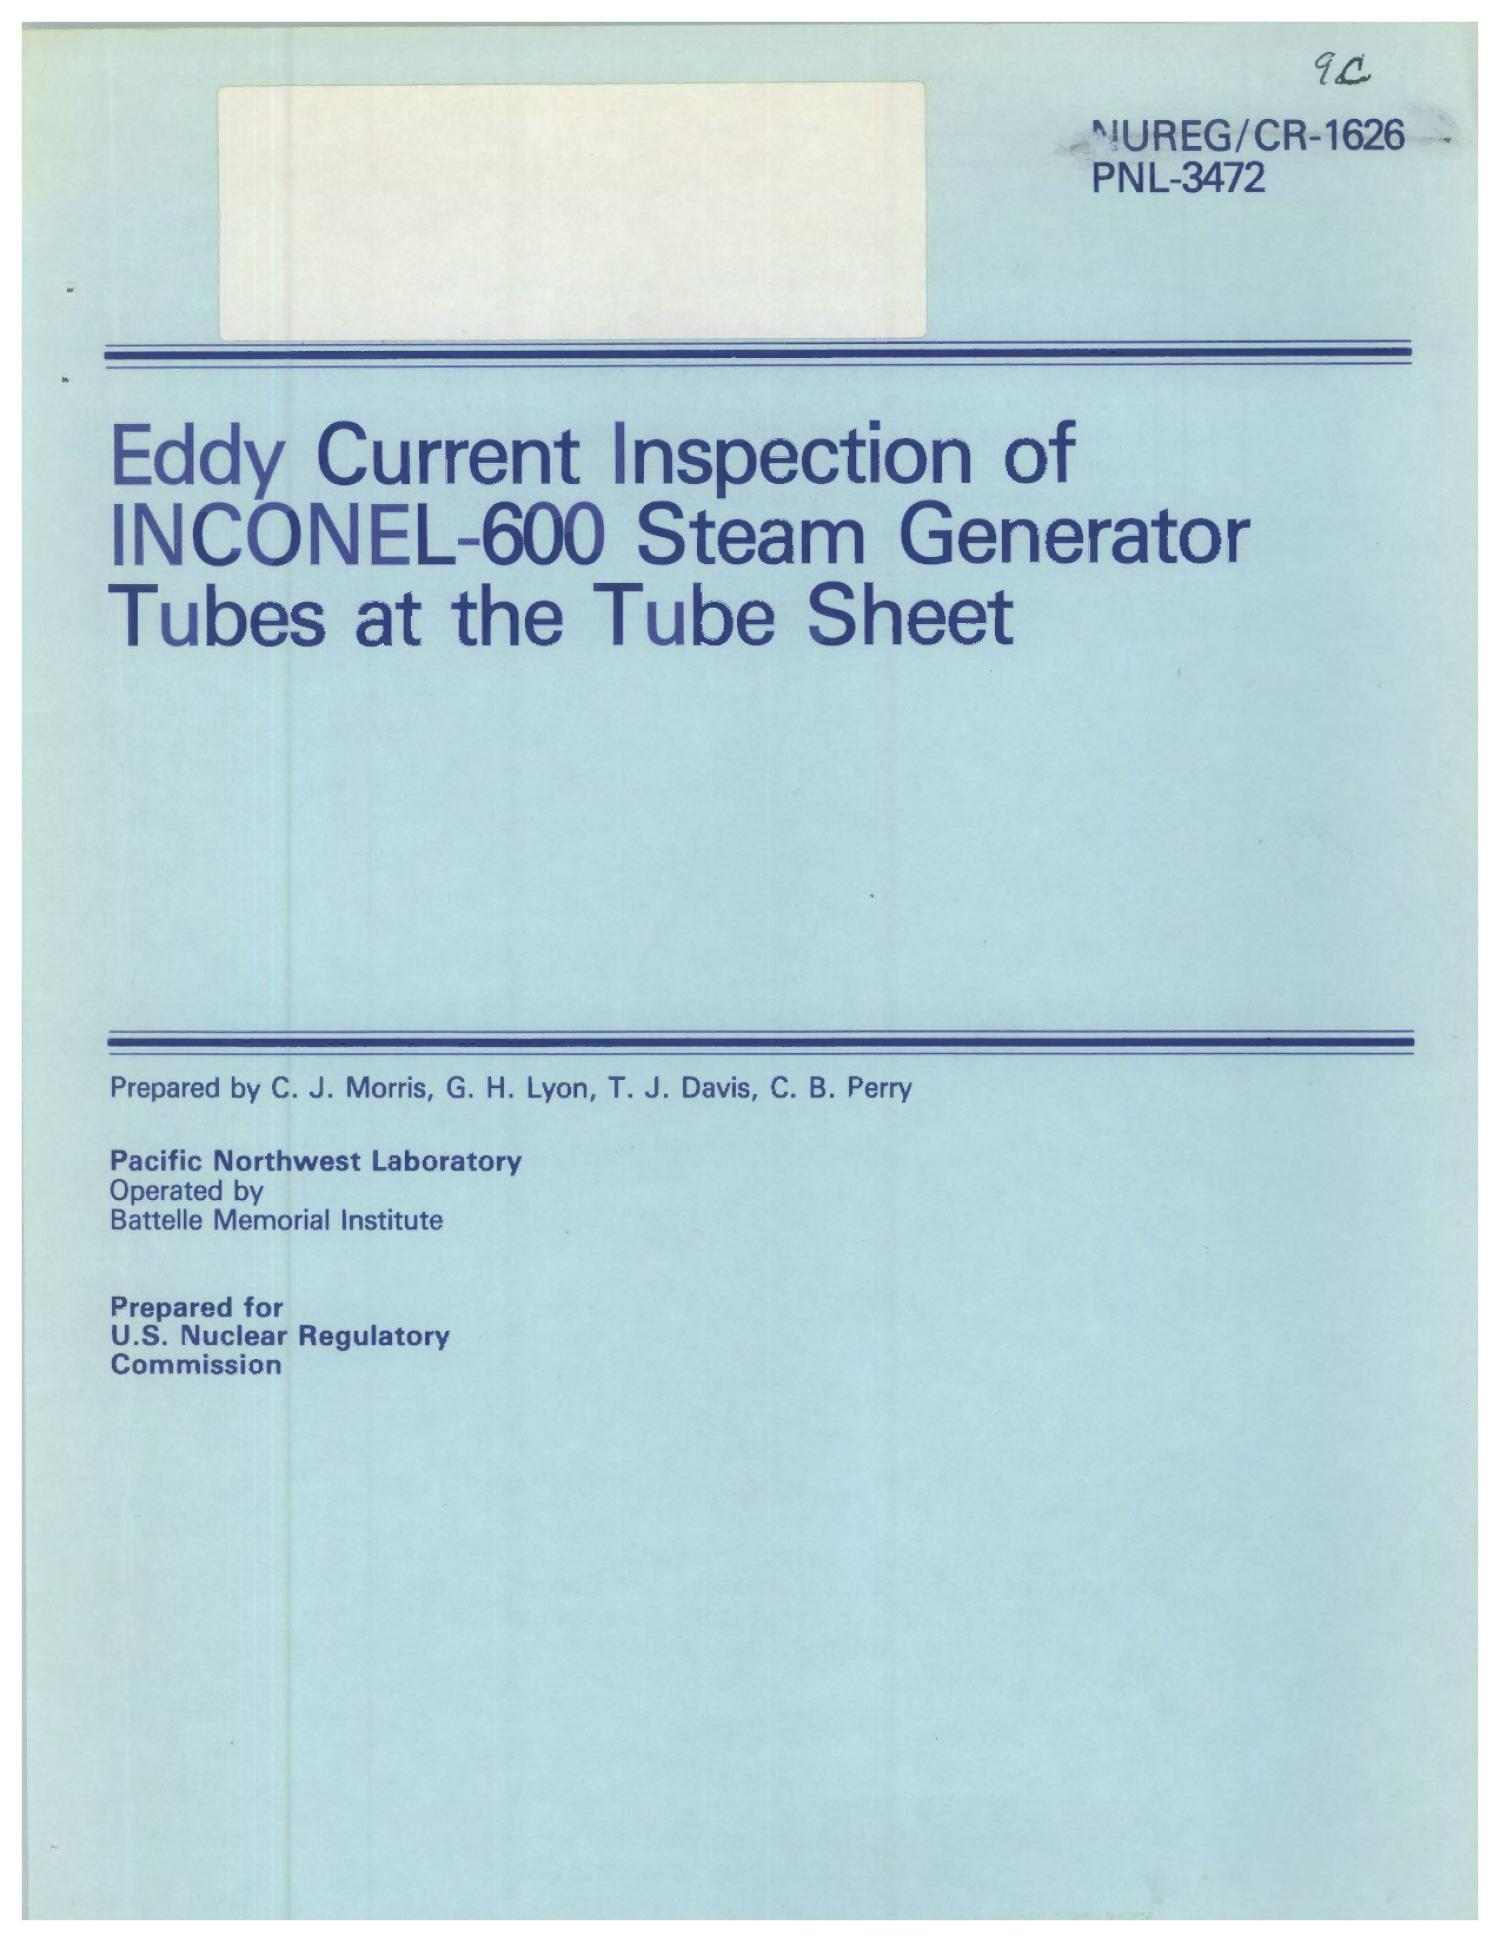 Eddy Current Inspection of INCONEL 600 Steam Generator Tubes at